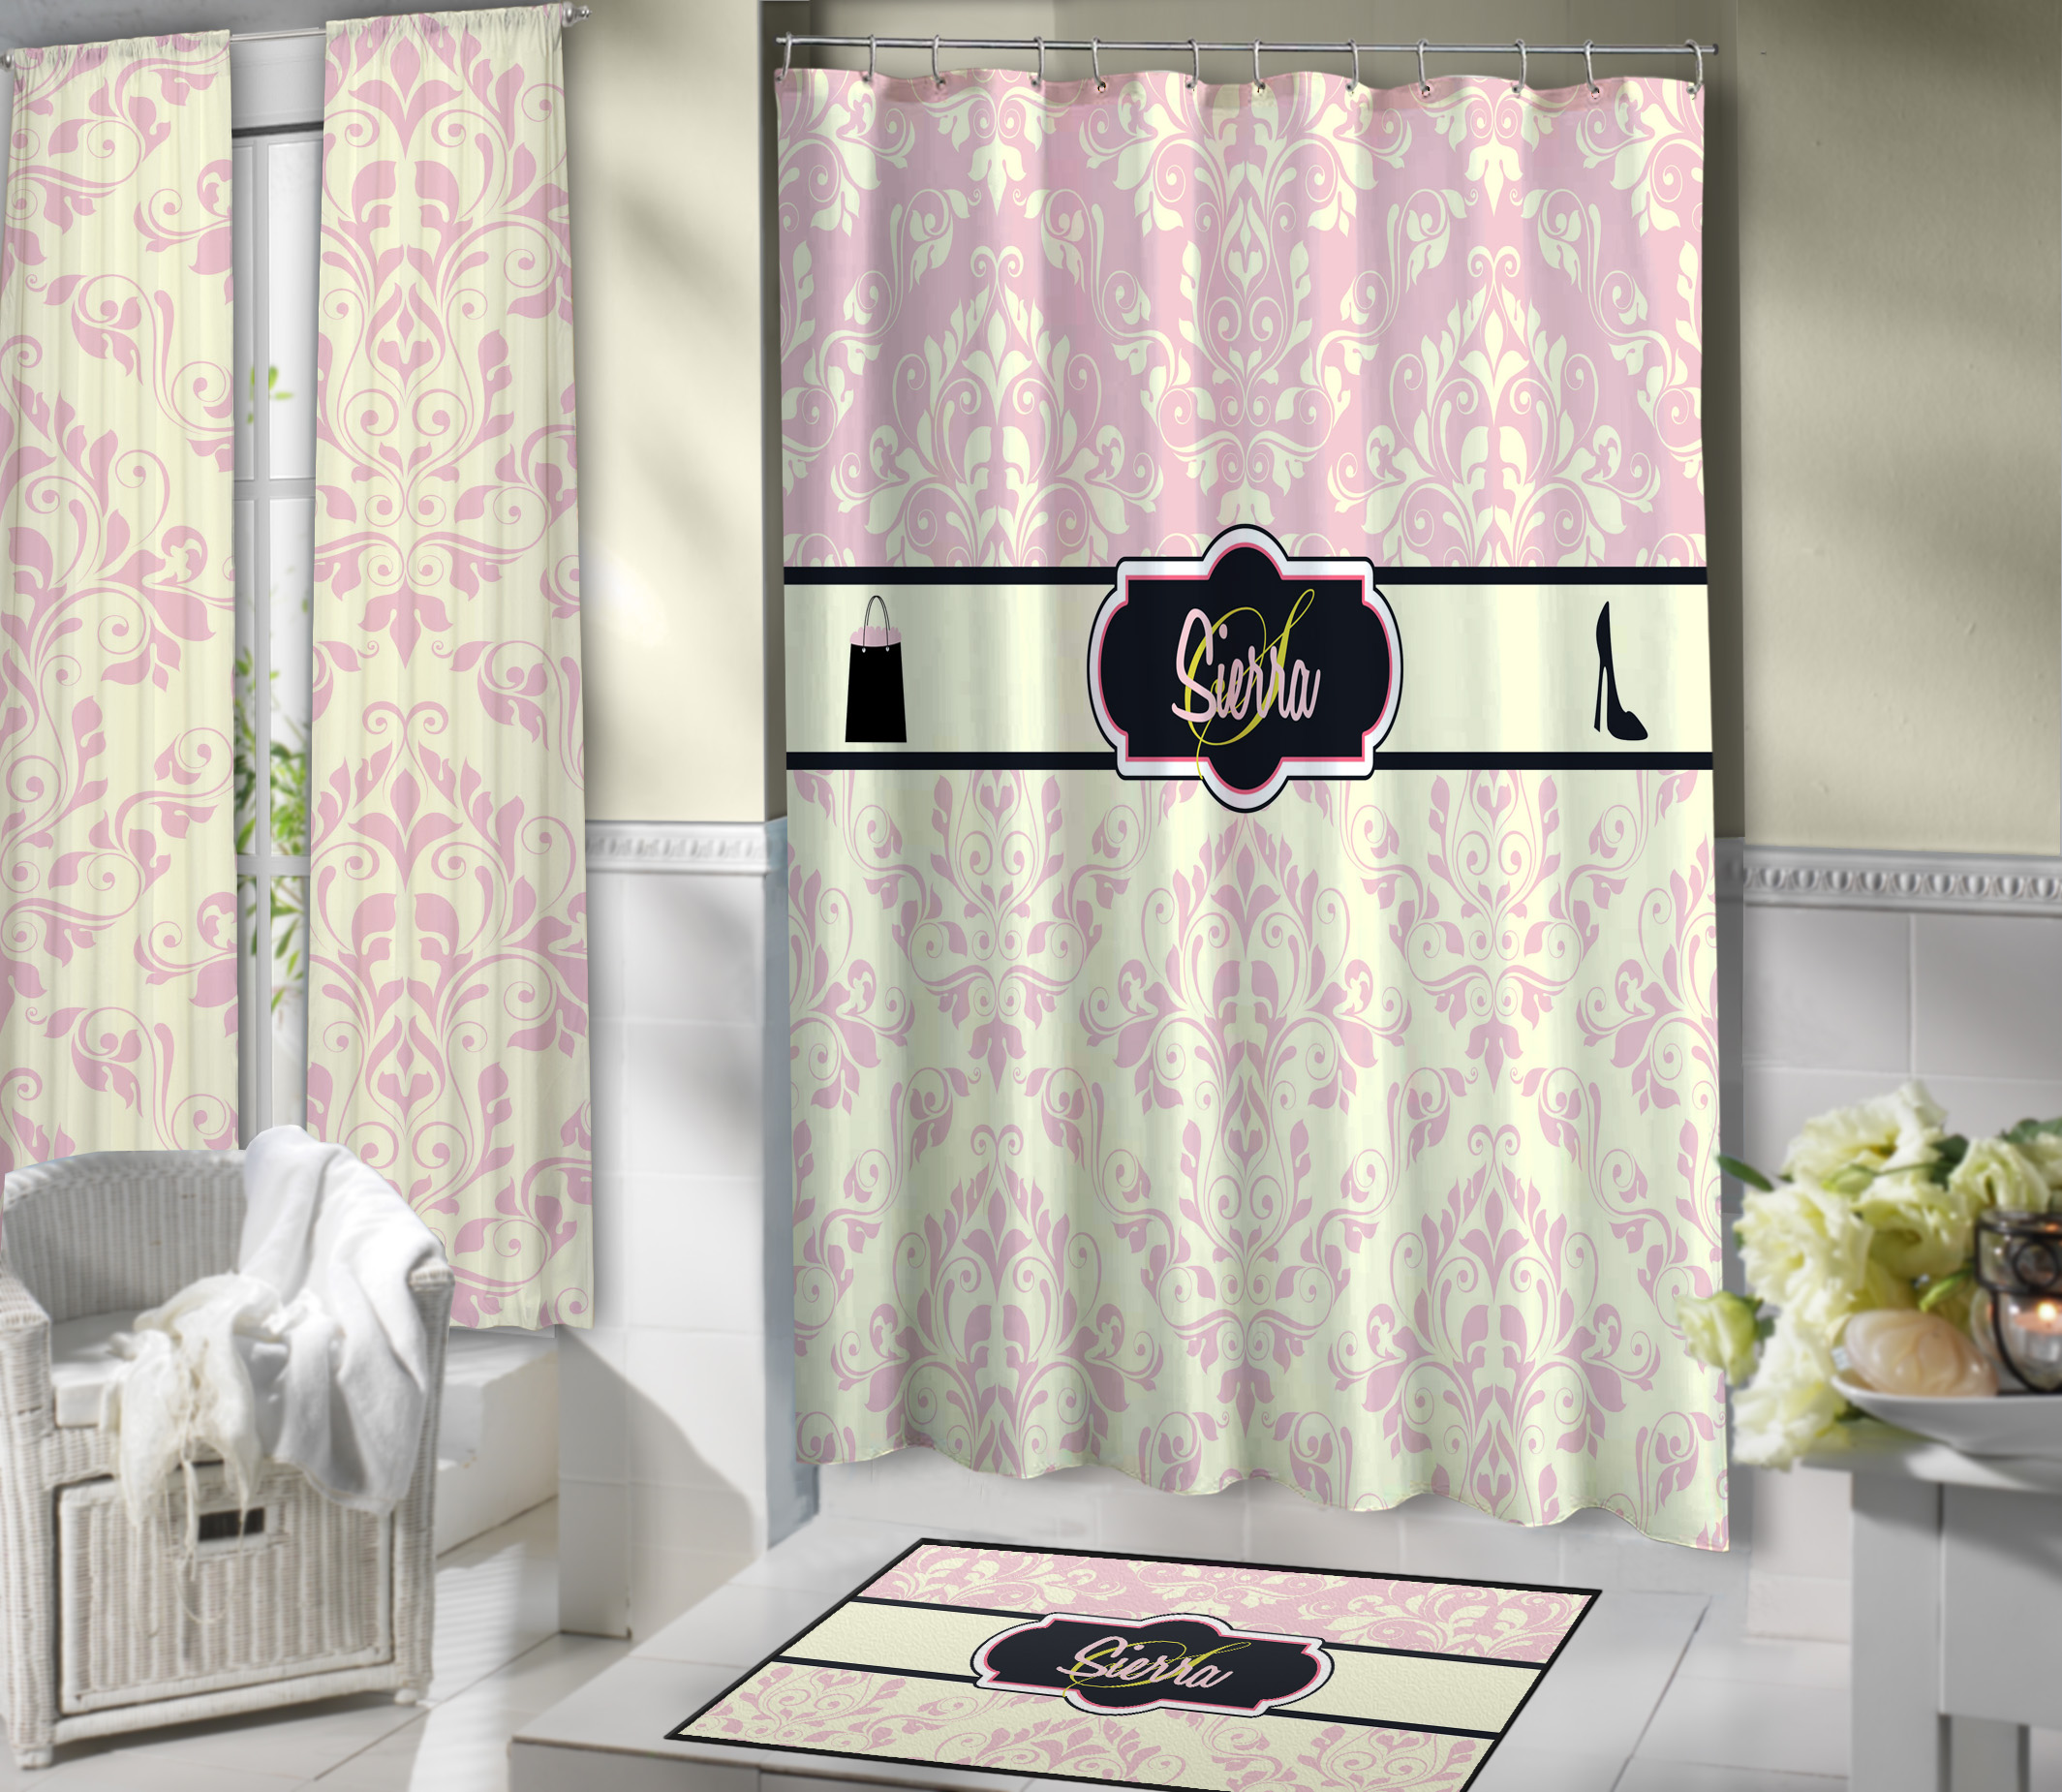 Light Pink Fashion Victorian Style Shower Curtain with Shopping Bags